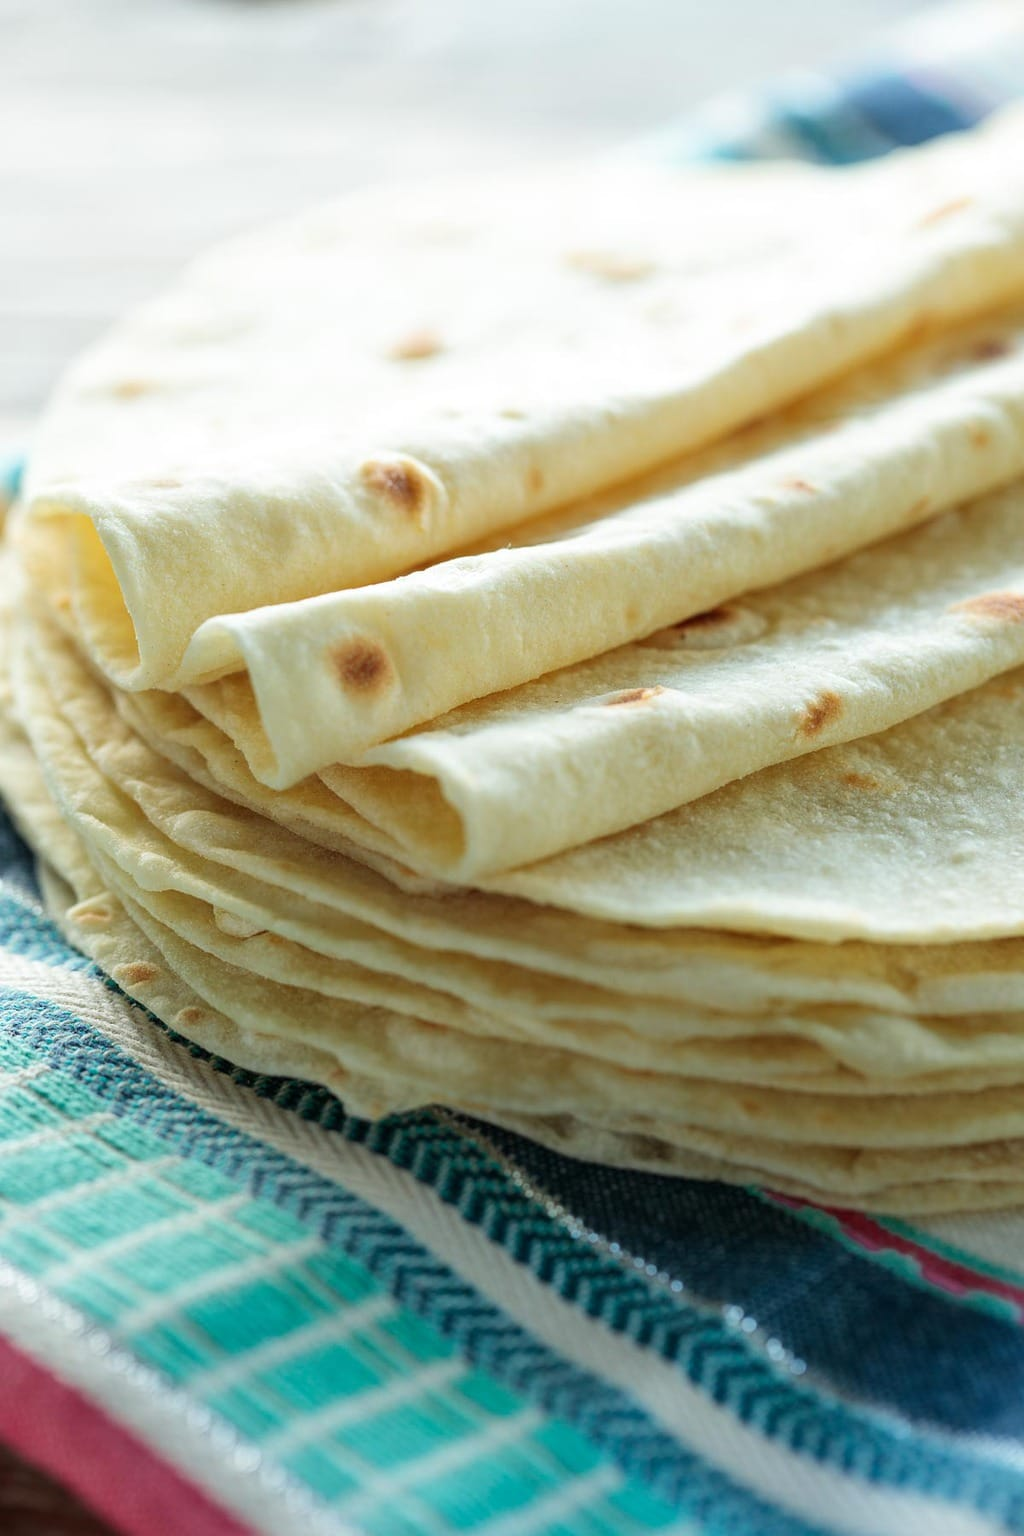 Closeup photo of a stack of Best Ever Homemade Flour Tortillas on a Mexican designed cloth.